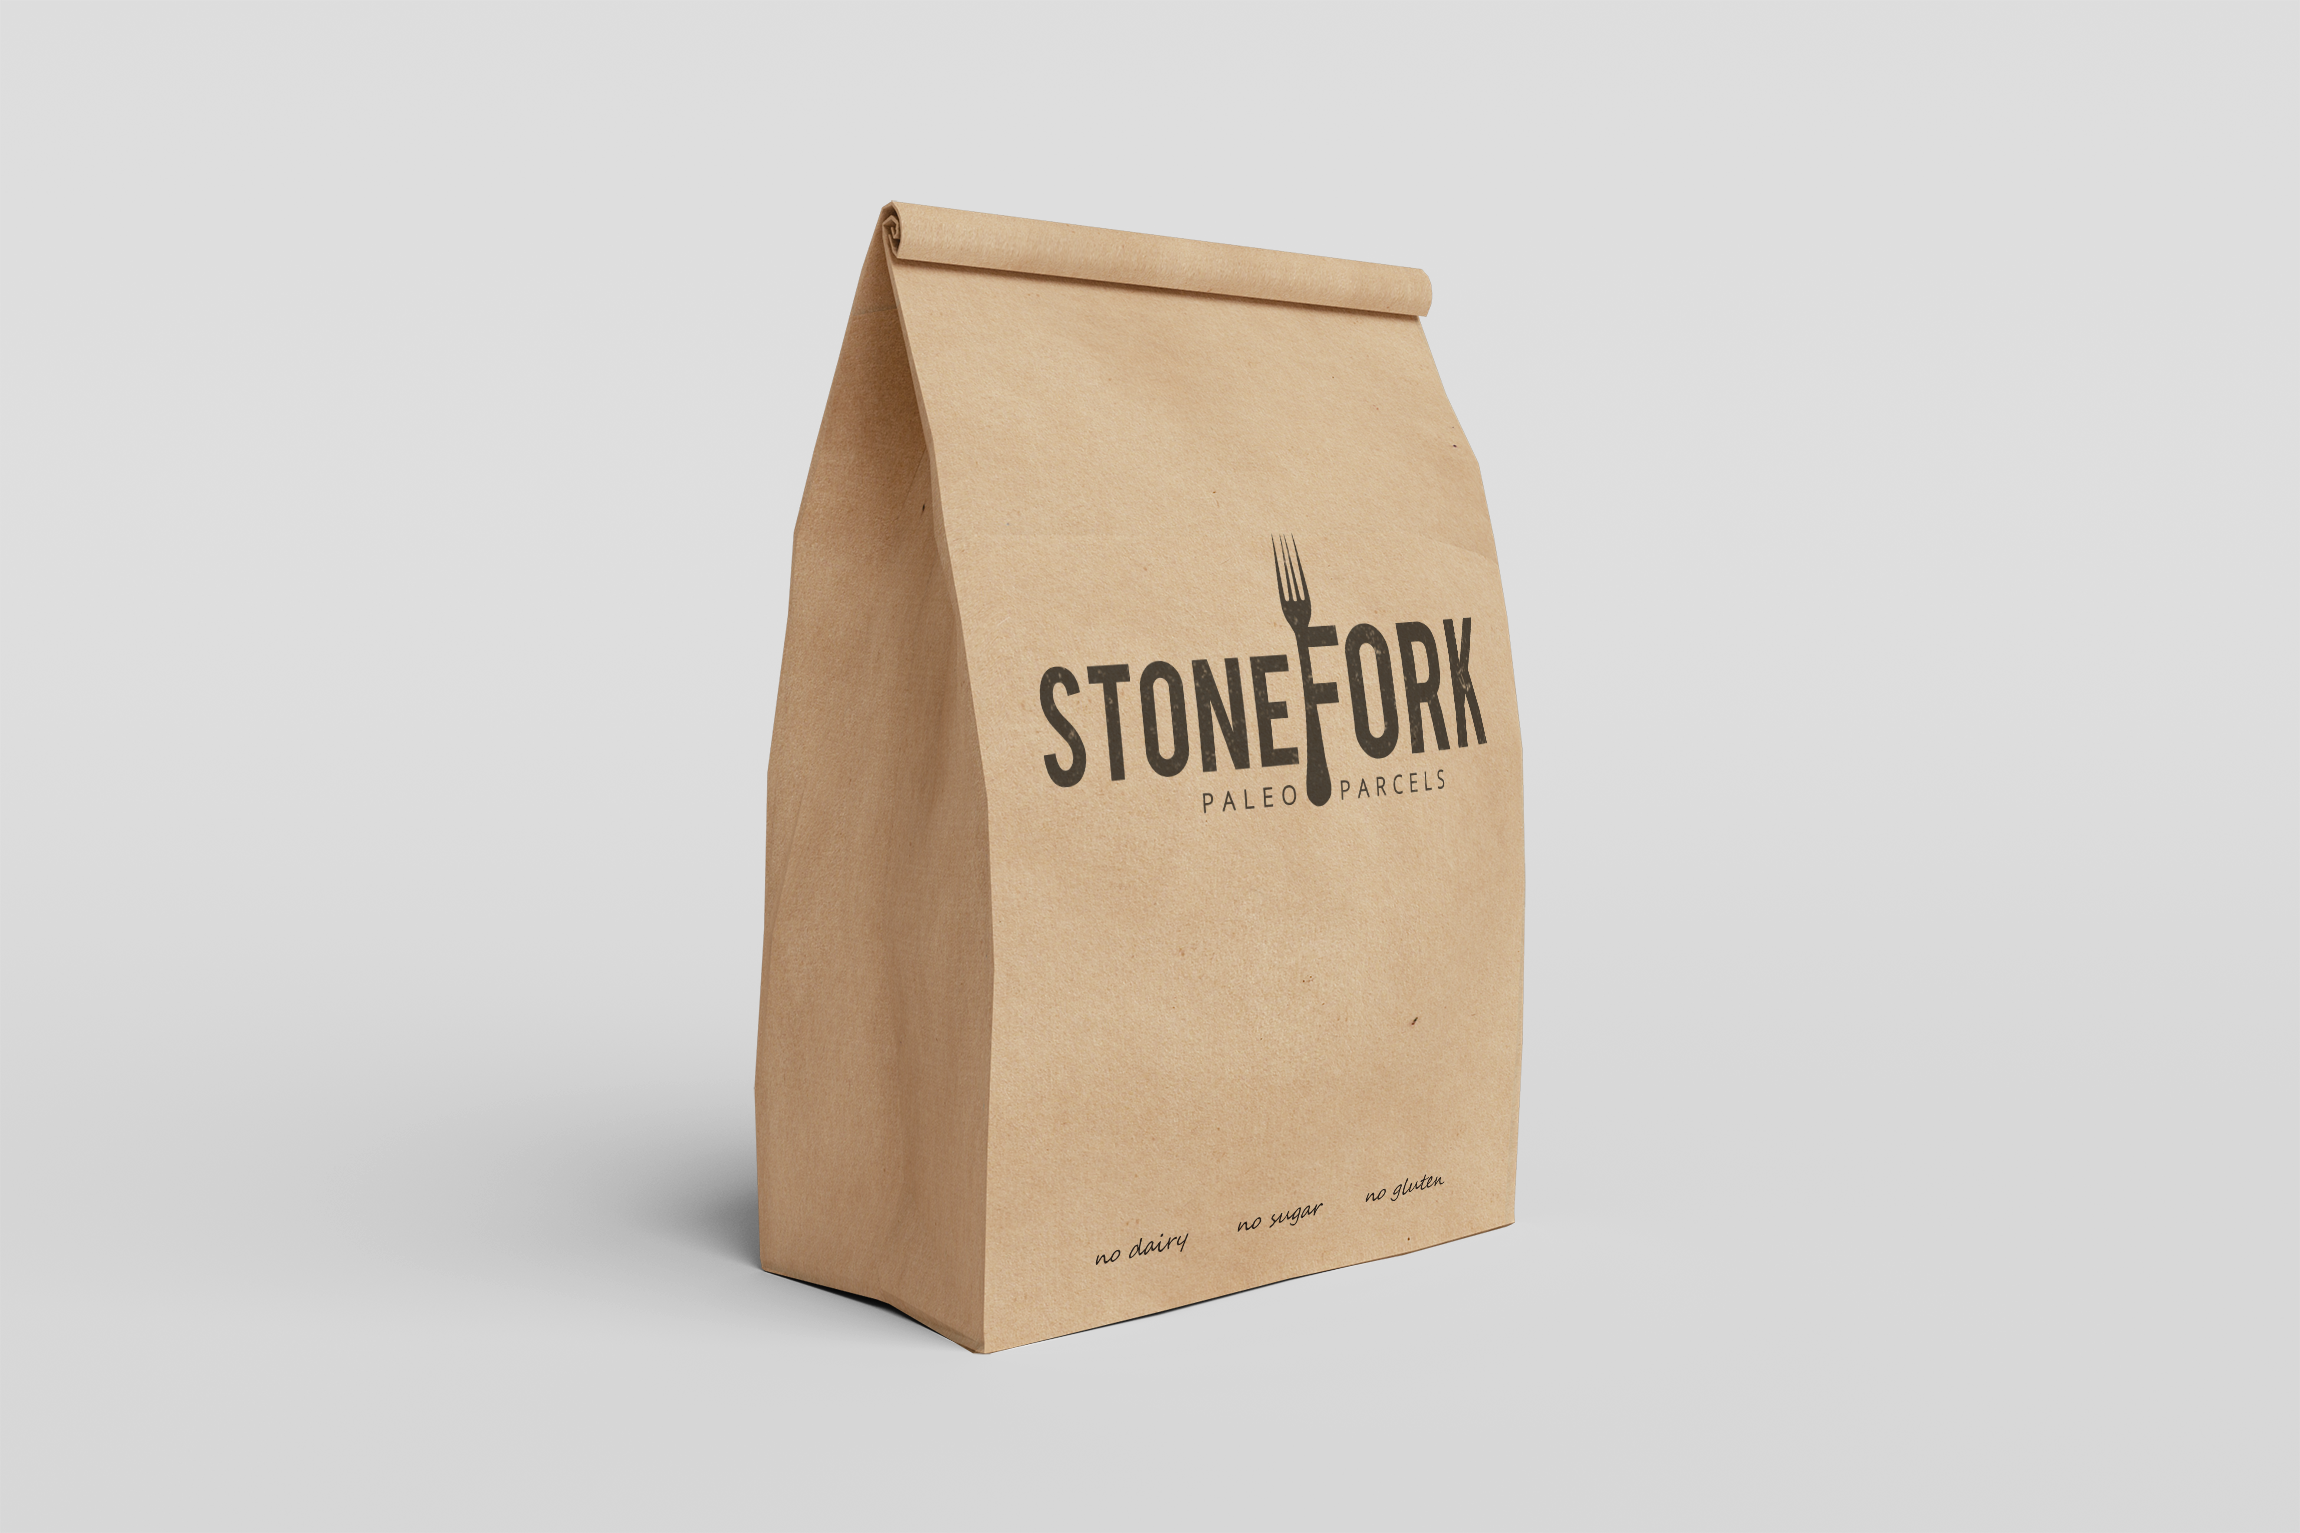 StoneFork makes accessible and delicious paleolithic food, and provides guilt-free treats for the modern caveman containing no dairy, sugar or gluten.